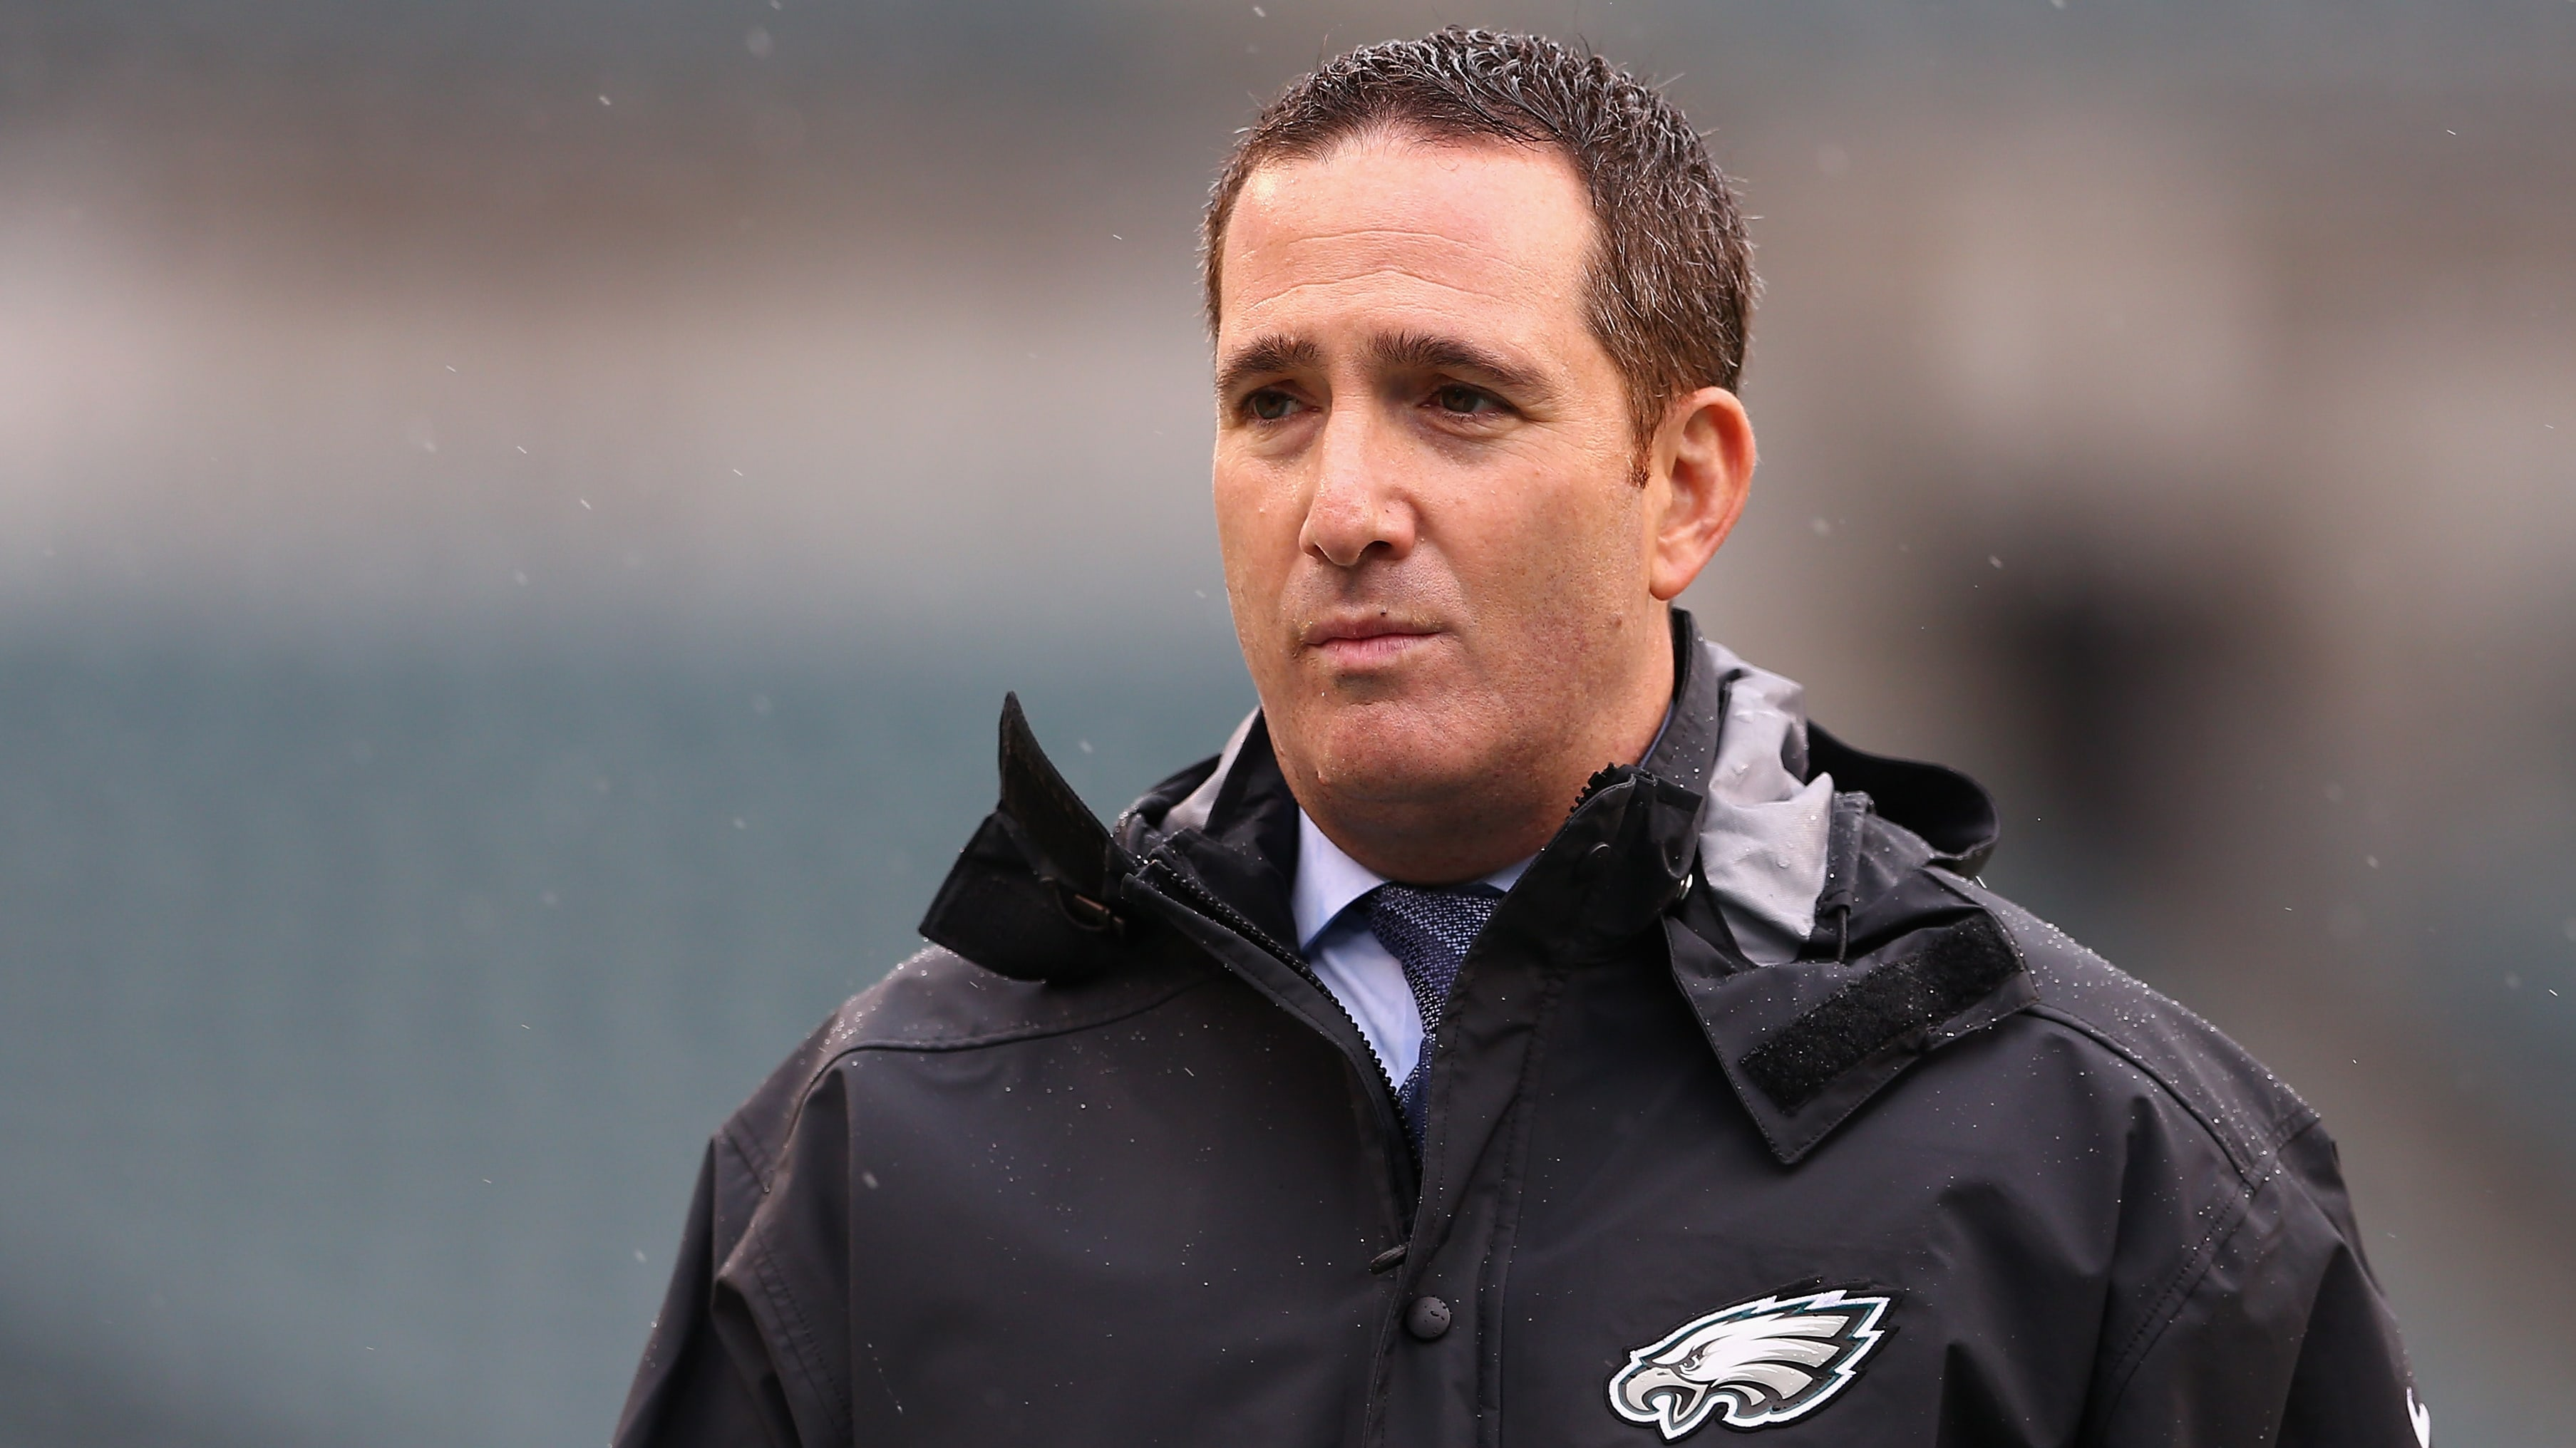 PHILADELPHIA, PA - SEPTEMBER 23:  Howie Roseman, General Manager of the Philadelphia Eagles looks on before the game against the Indianapolis Colts at Lincoln Financial Field on September 23, 2018 in Philadelphia, Pennsylvania.  (Photo by Mitchell Leff/Getty Images)